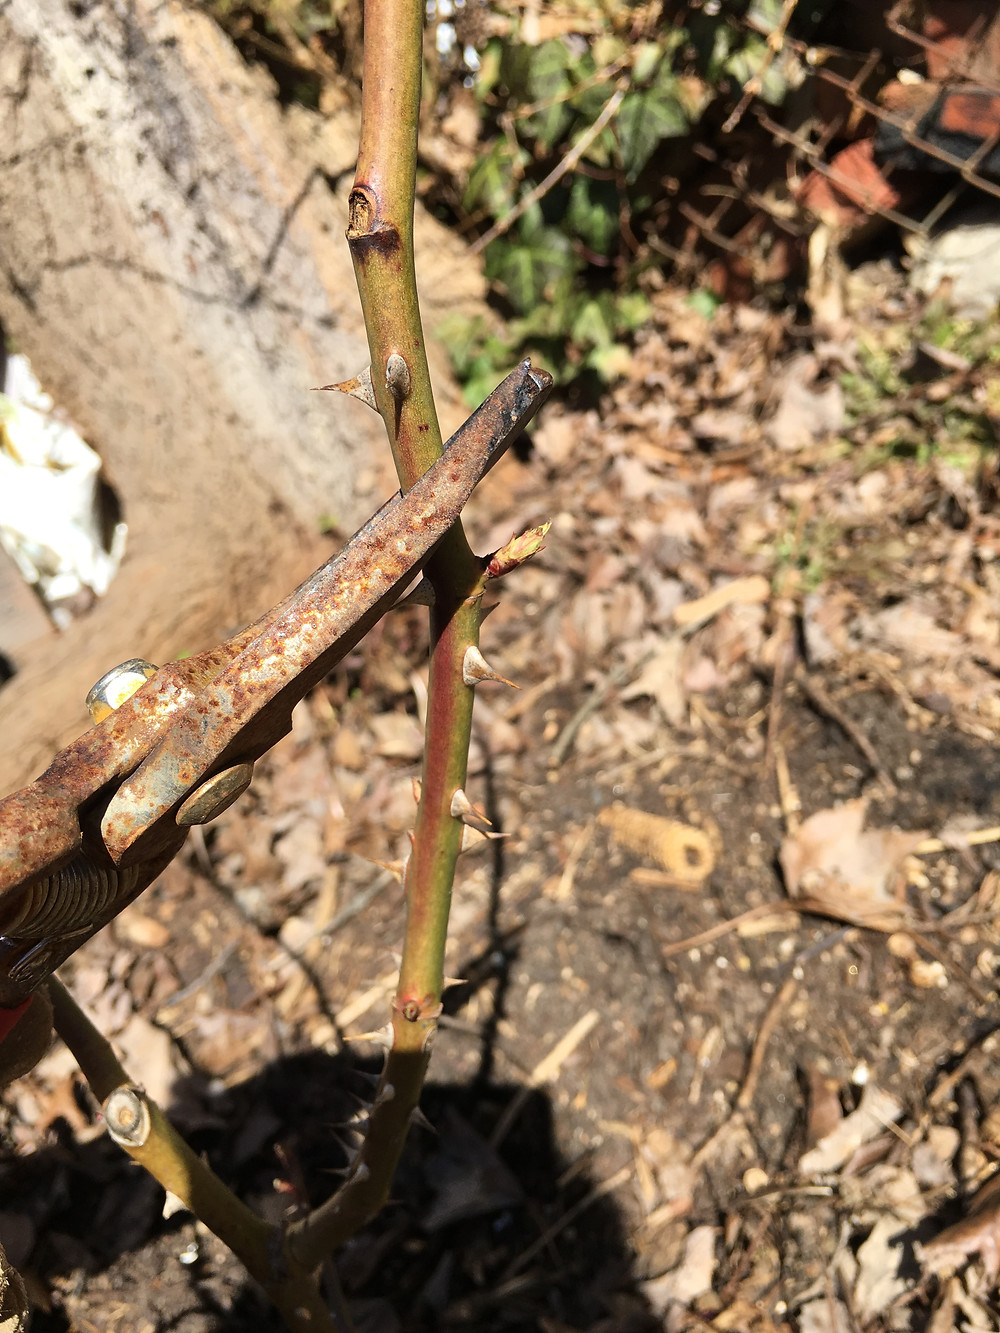 Prune at 45 Degrees to an Outward Facing Bud